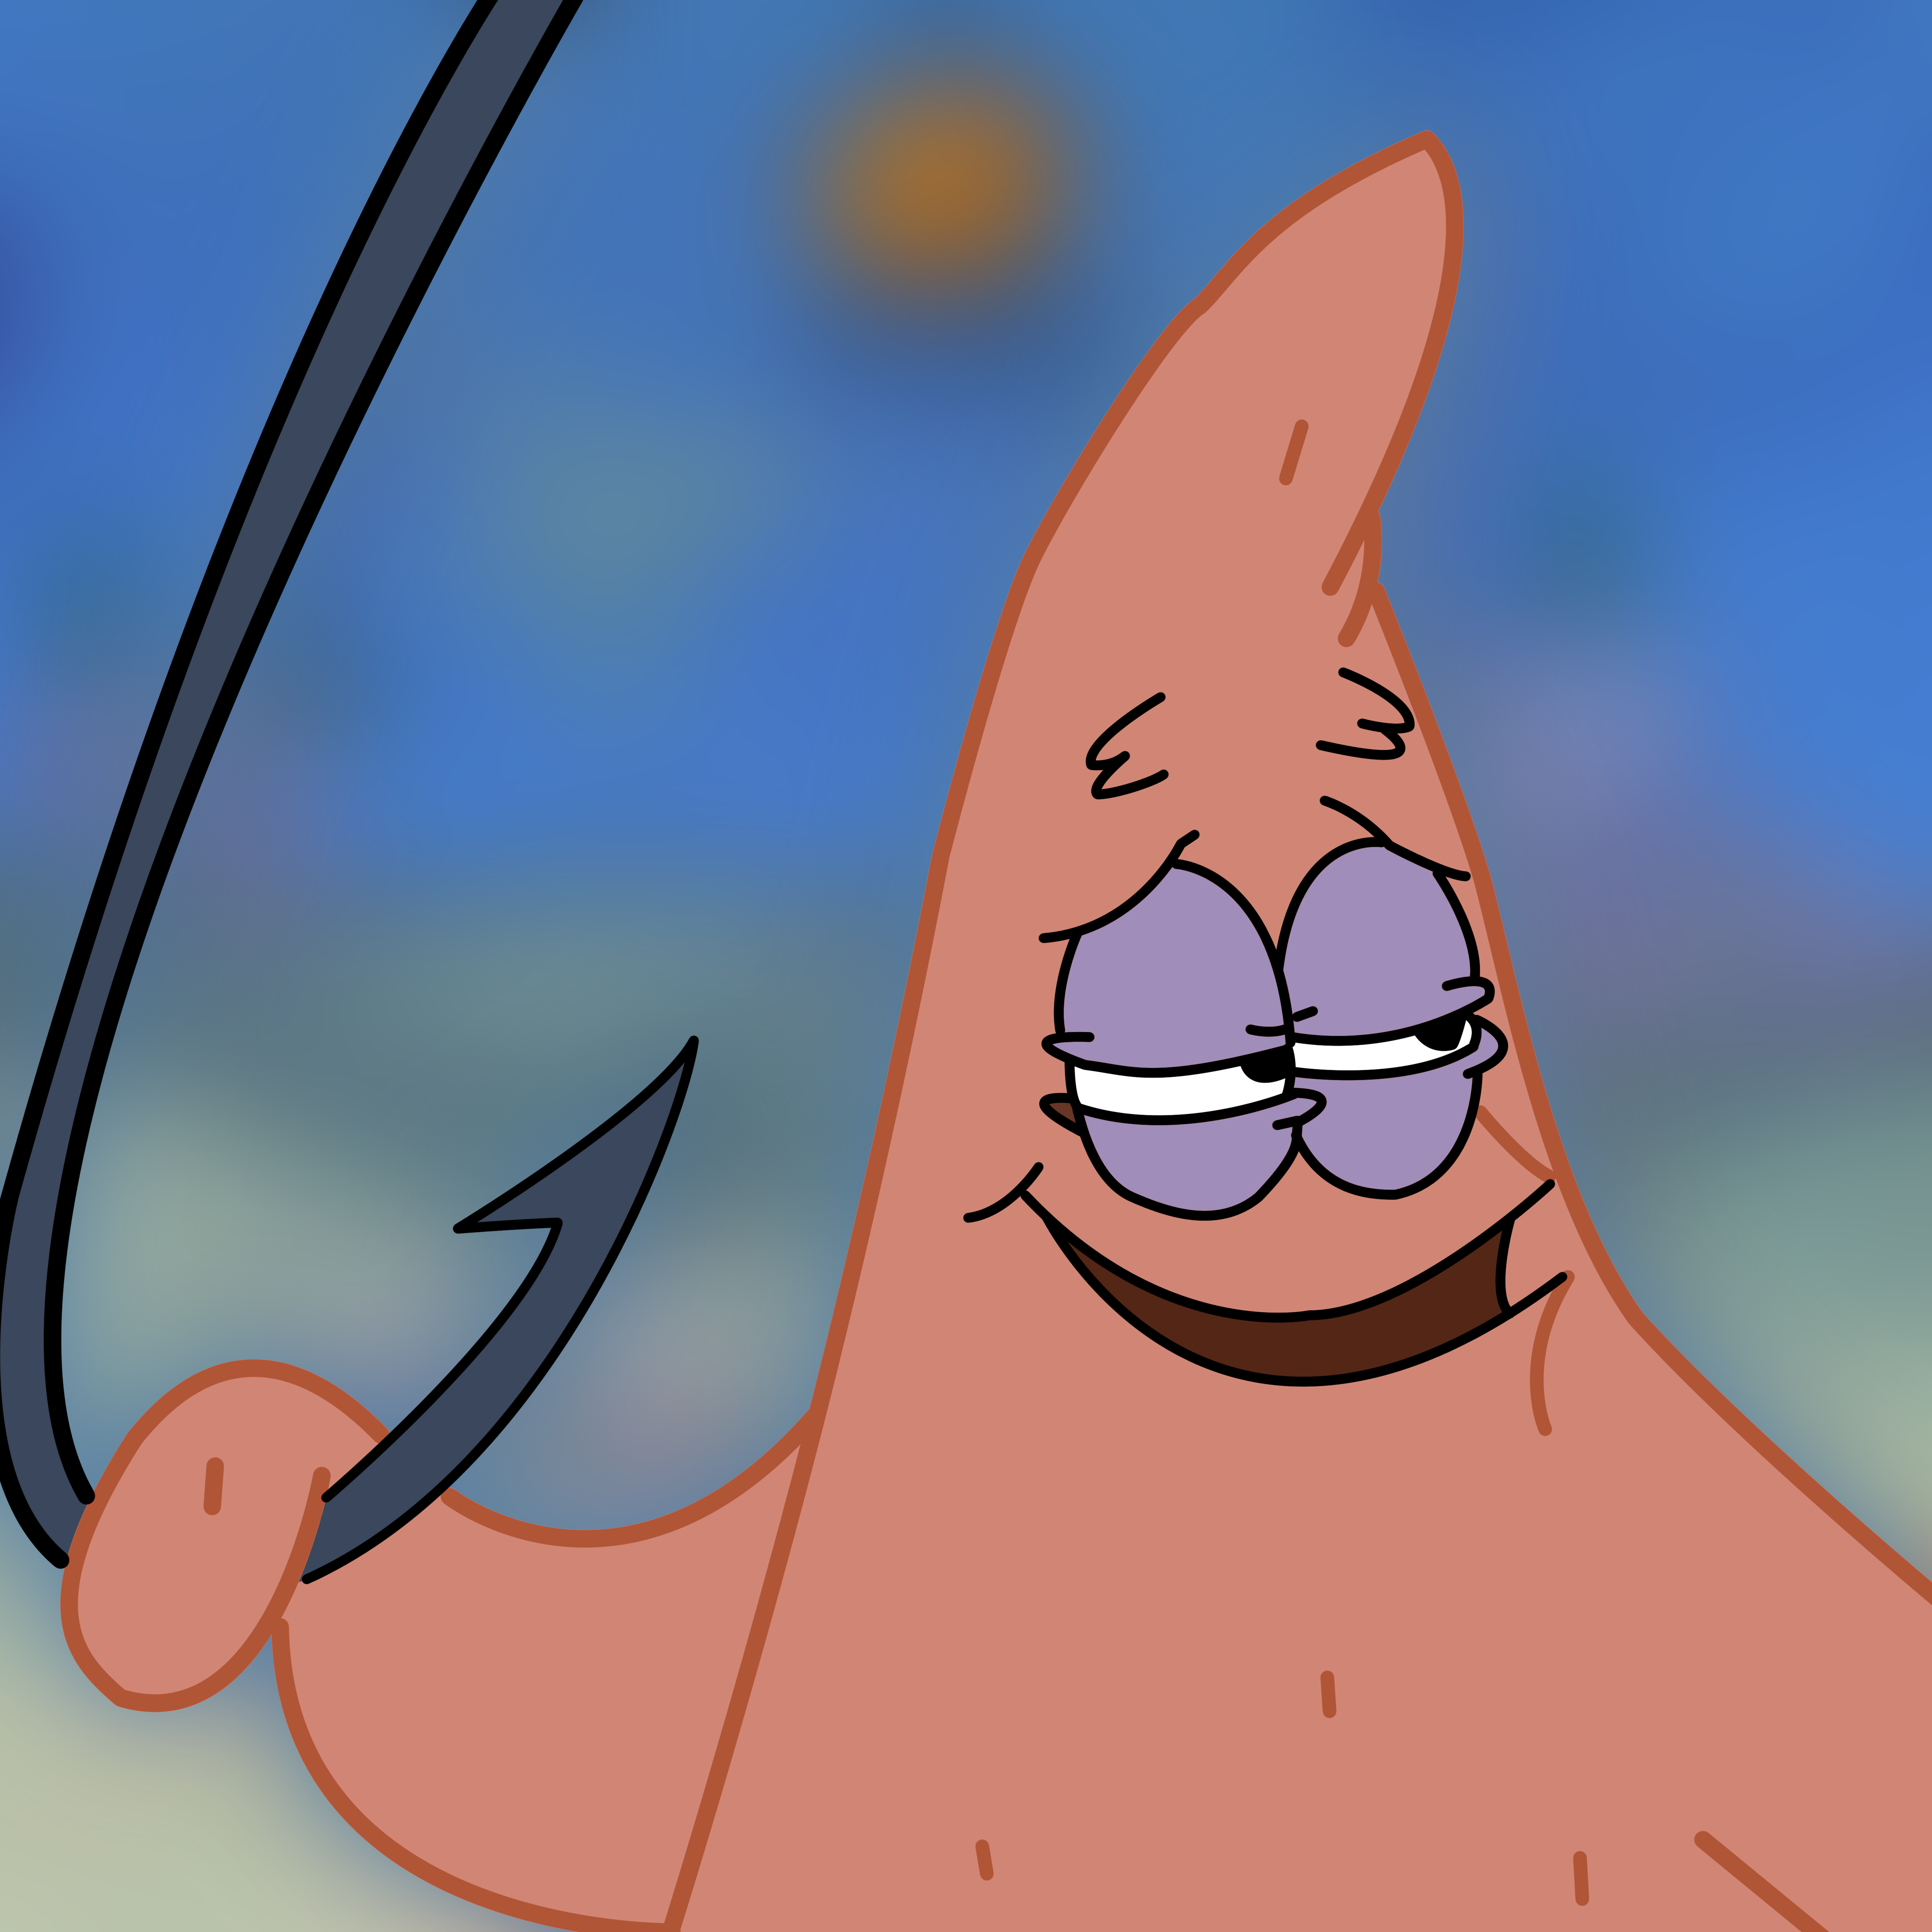 Patrick bait 5000 bait this is bait know your meme patrick star face nose cartoon mammal vertebrate head eye sky mouth smile fictional character voltagebd Gallery